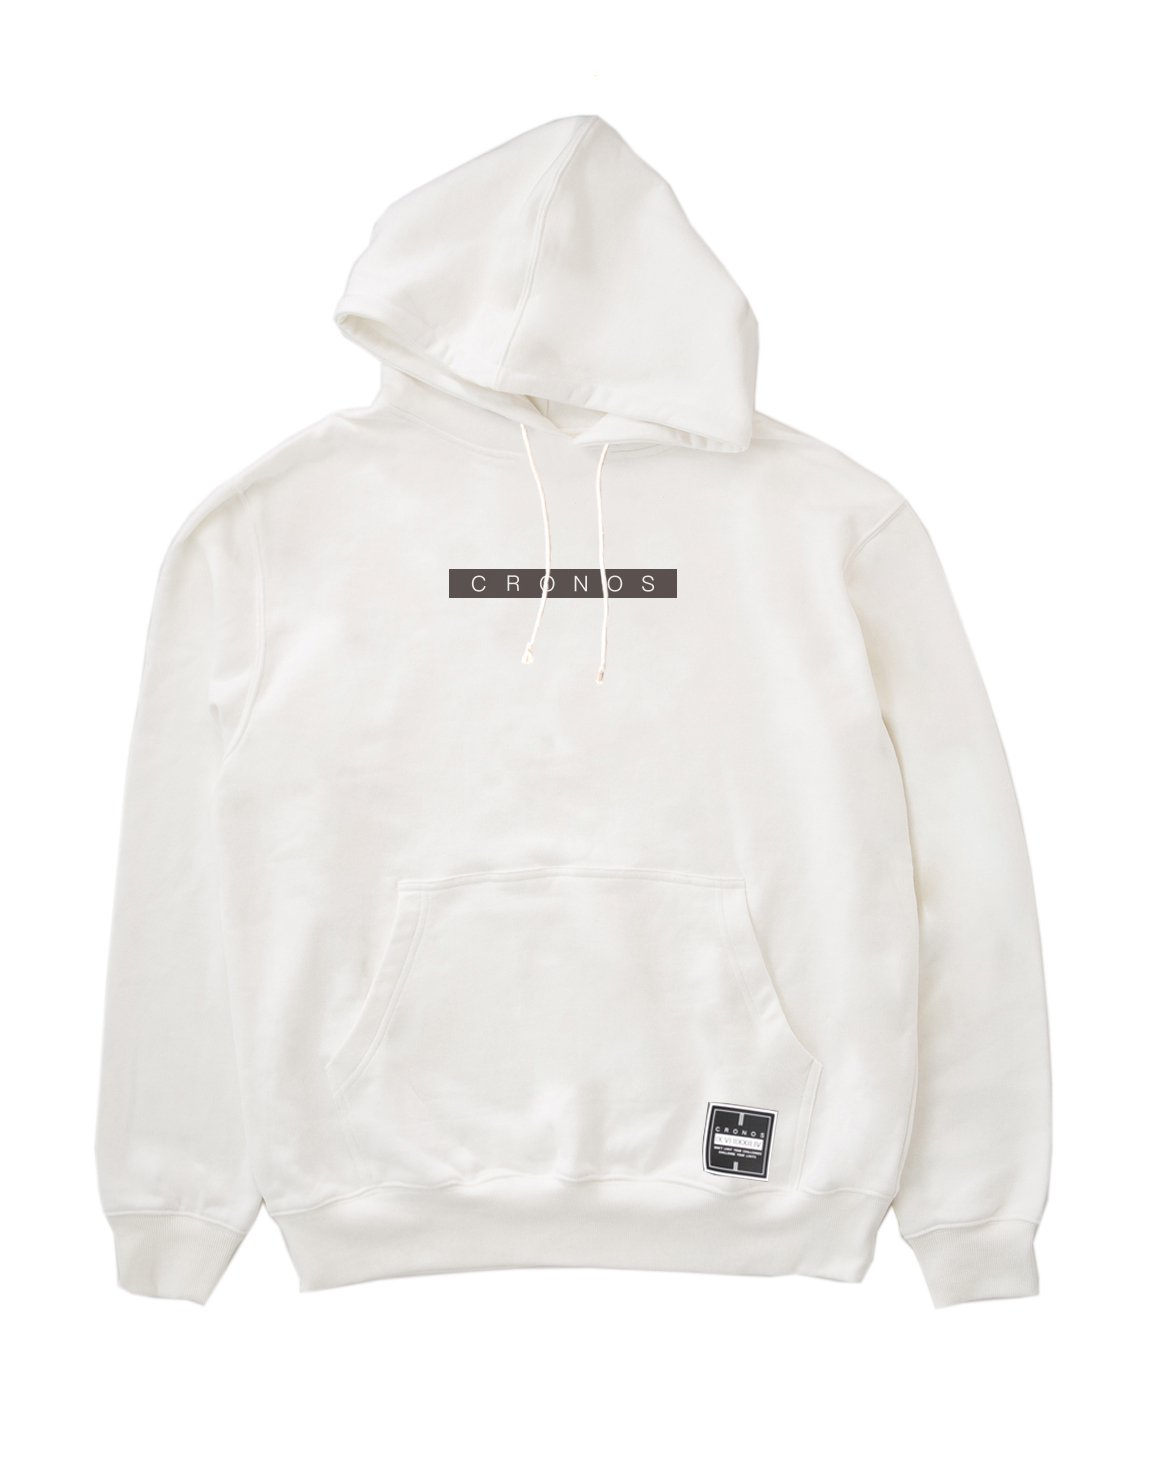 <img class='new_mark_img1' src='https://img.shop-pro.jp/img/new/icons1.gif' style='border:none;display:inline;margin:0px;padding:0px;width:auto;' />CRONOS BOX LOGO PULL OVER PARKA 【WHITE】